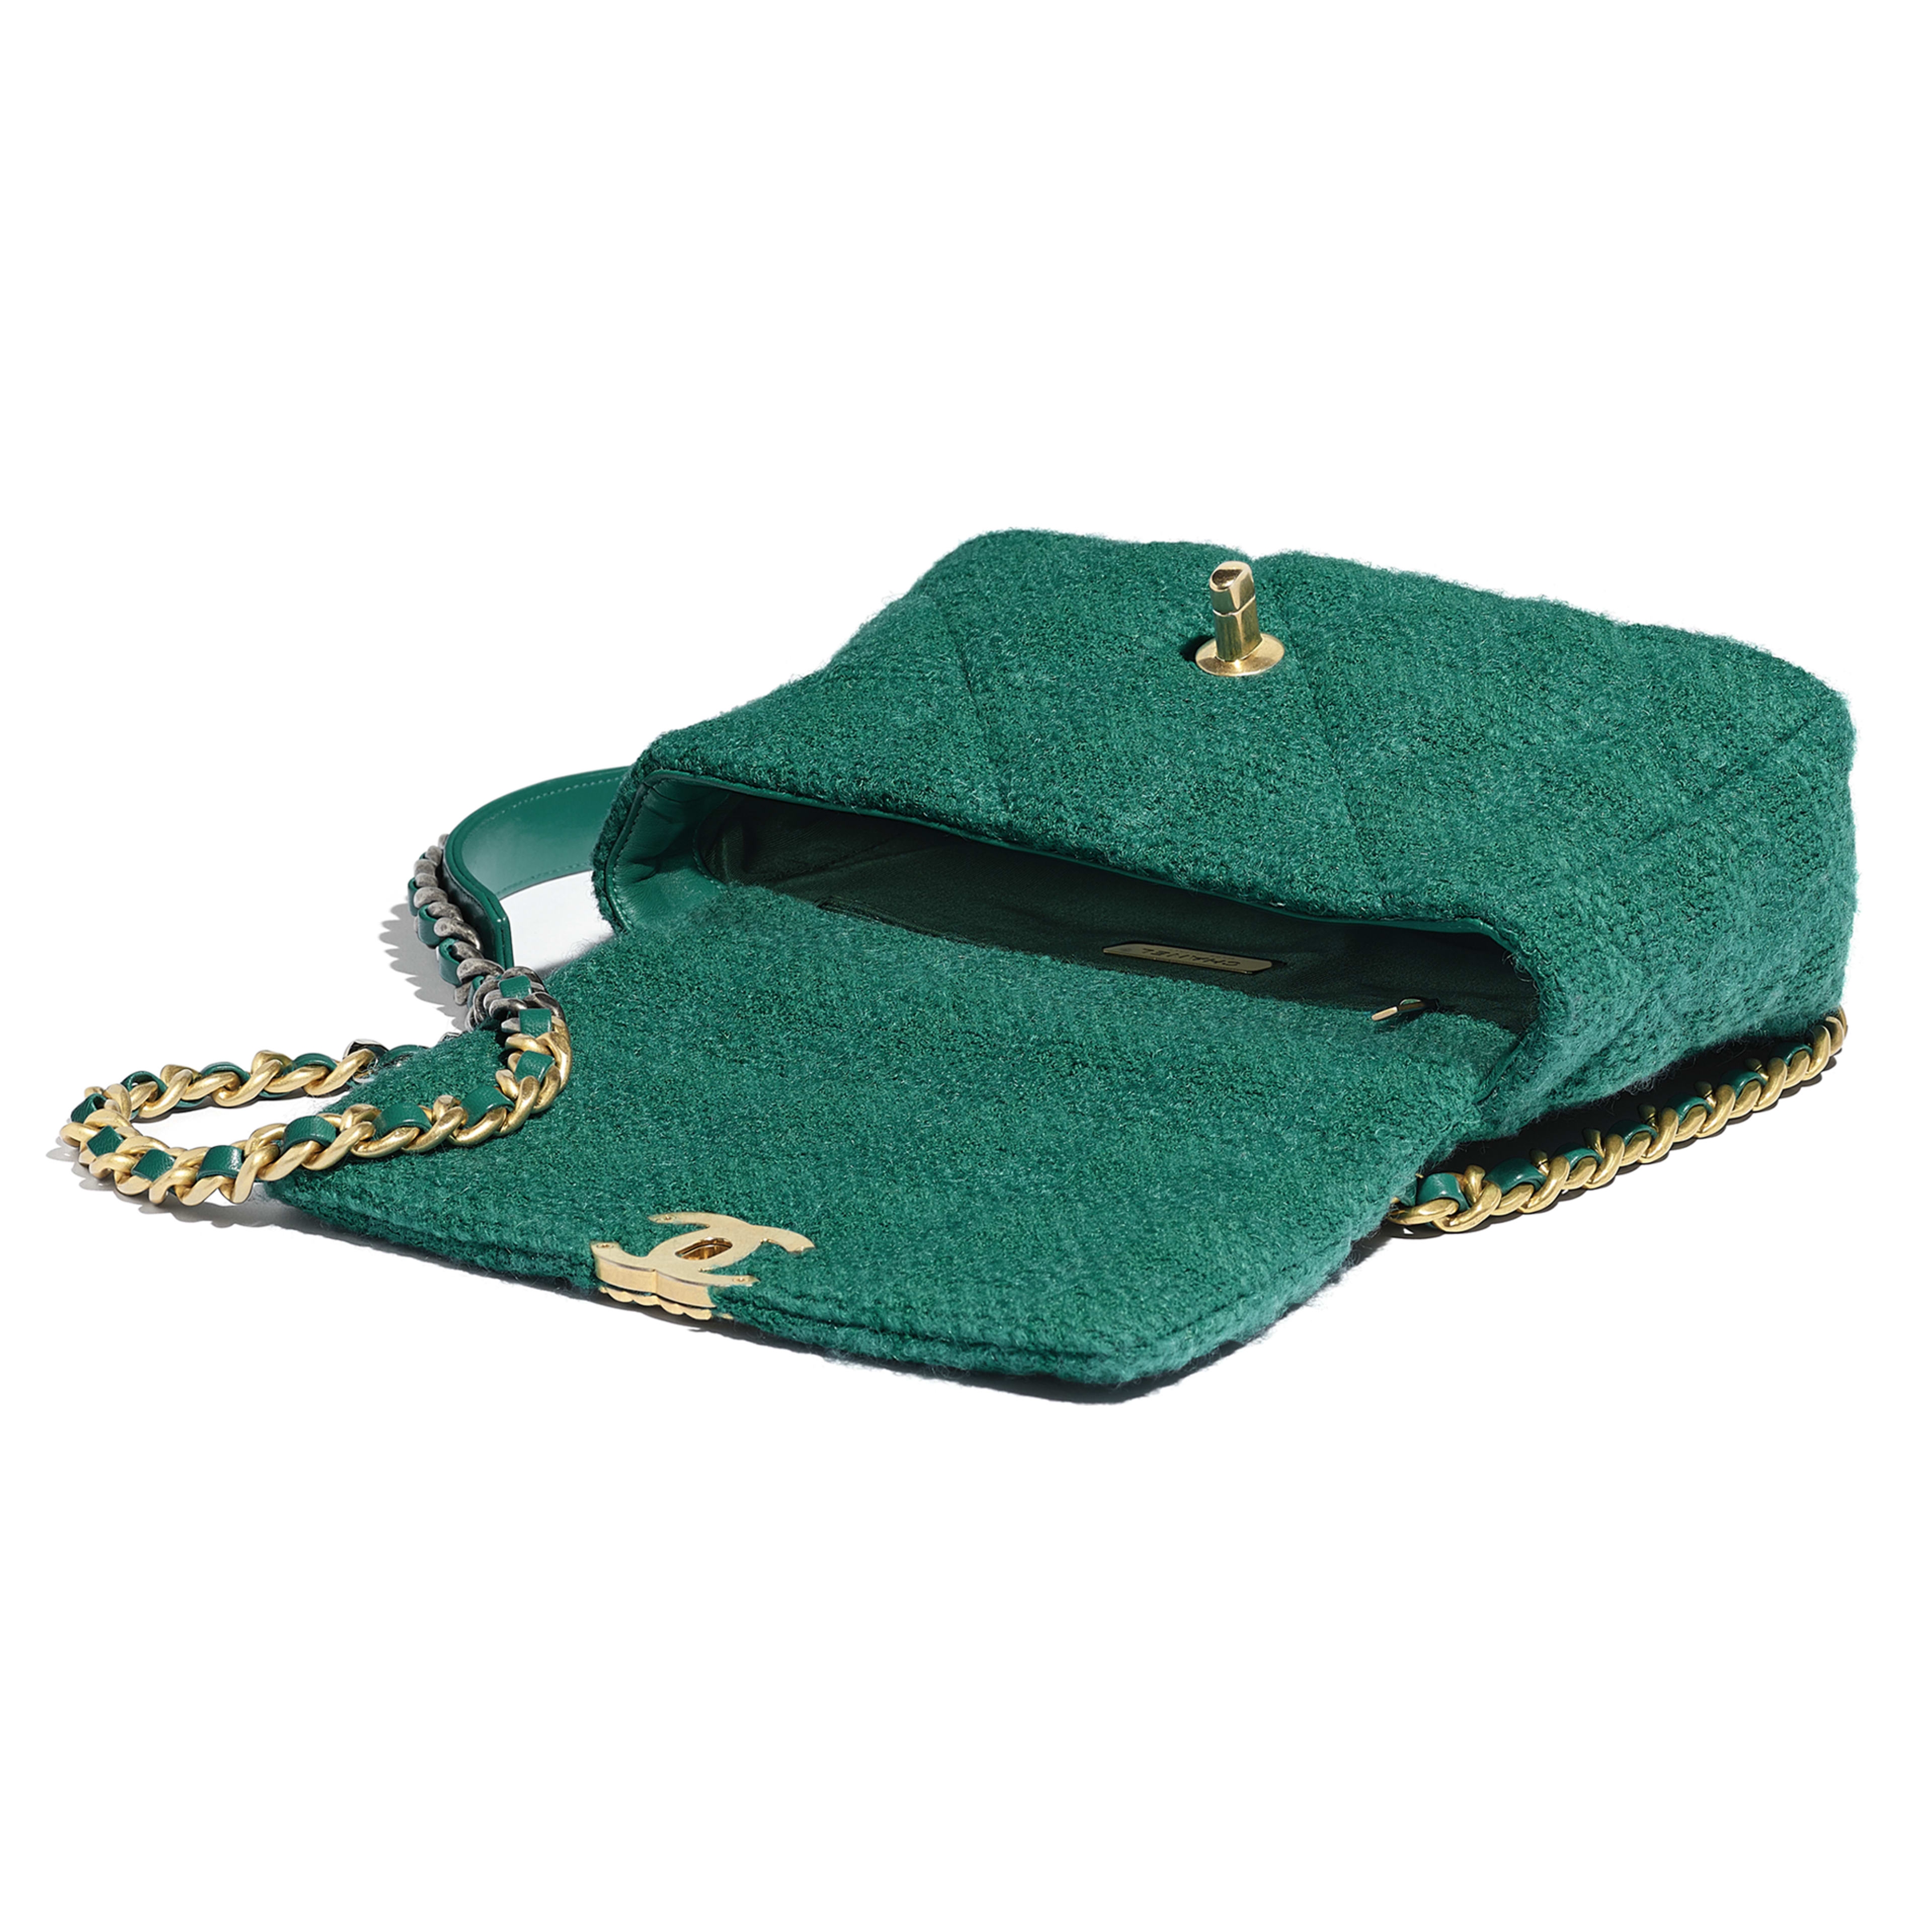 CHANEL 19 Flap Bag - Green - Wool Tweed, Gold-Tone, Silver-Tone & Ruthenium-Finish Metal - Other view - see full sized version